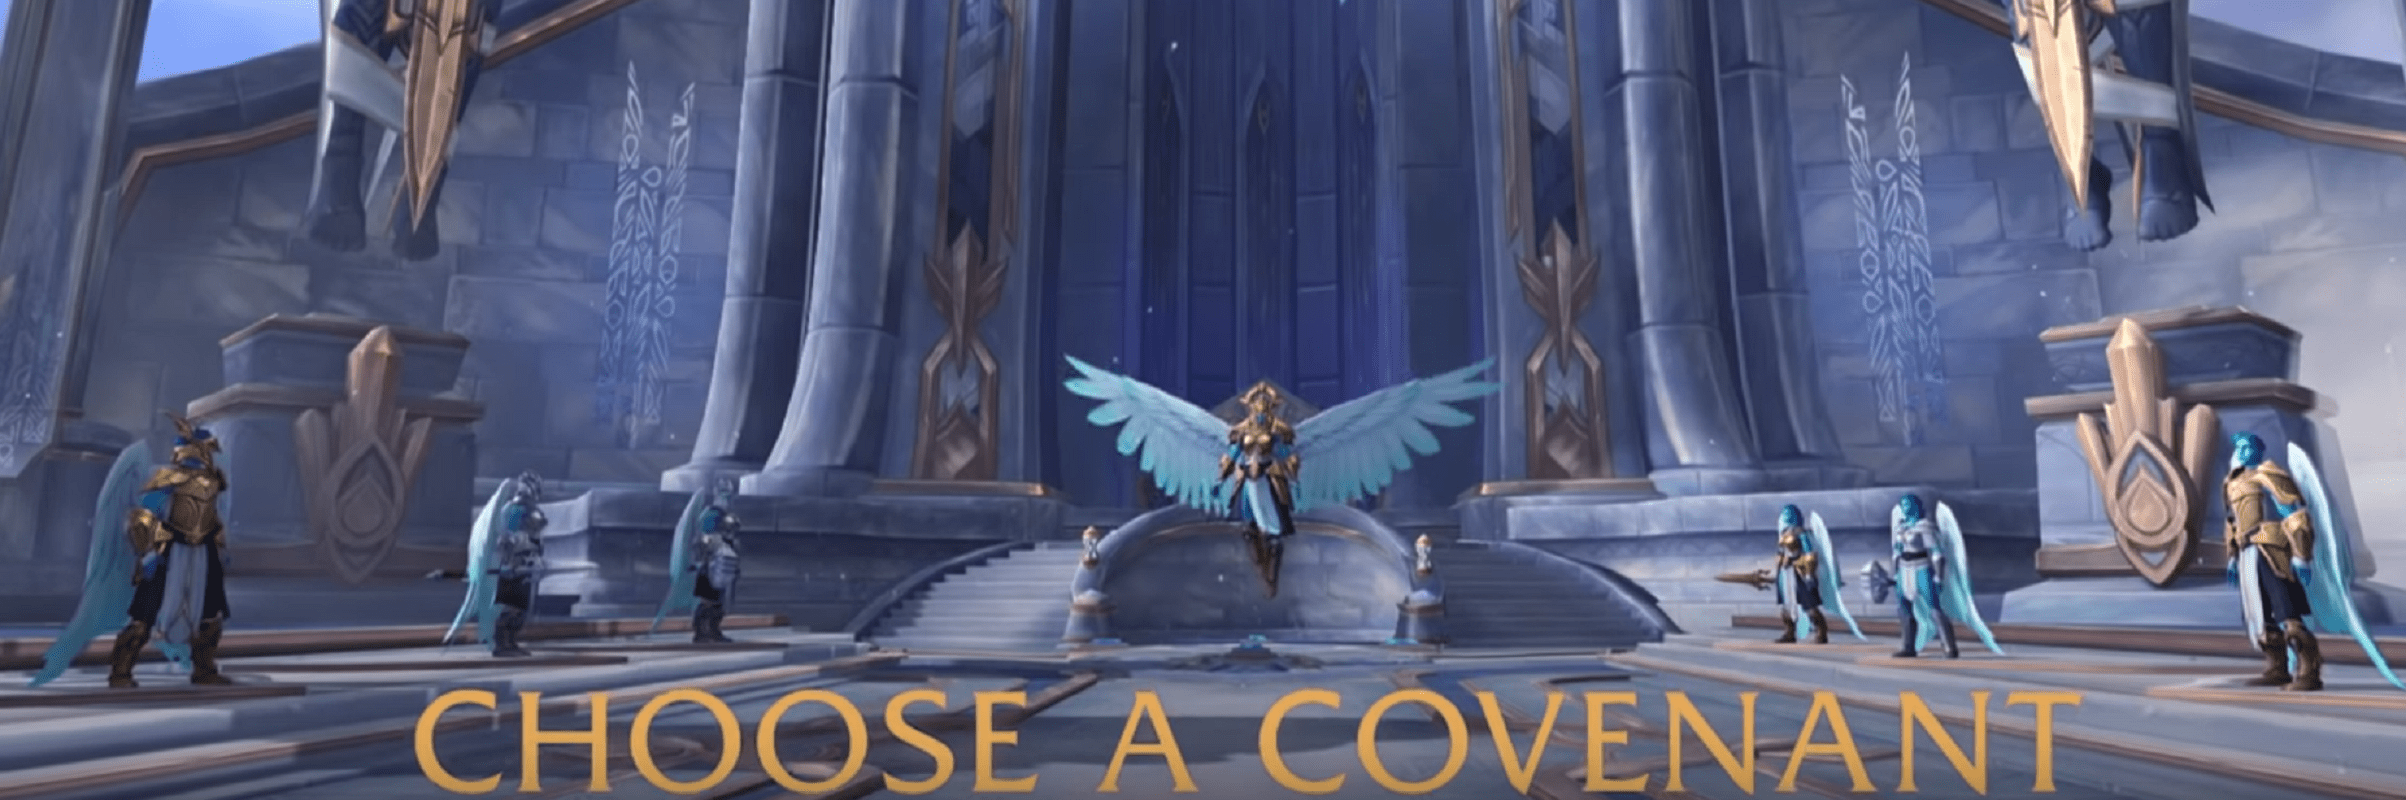 World of Warcraft Shadowlands – An Introduction To The Covenants And Their Zones